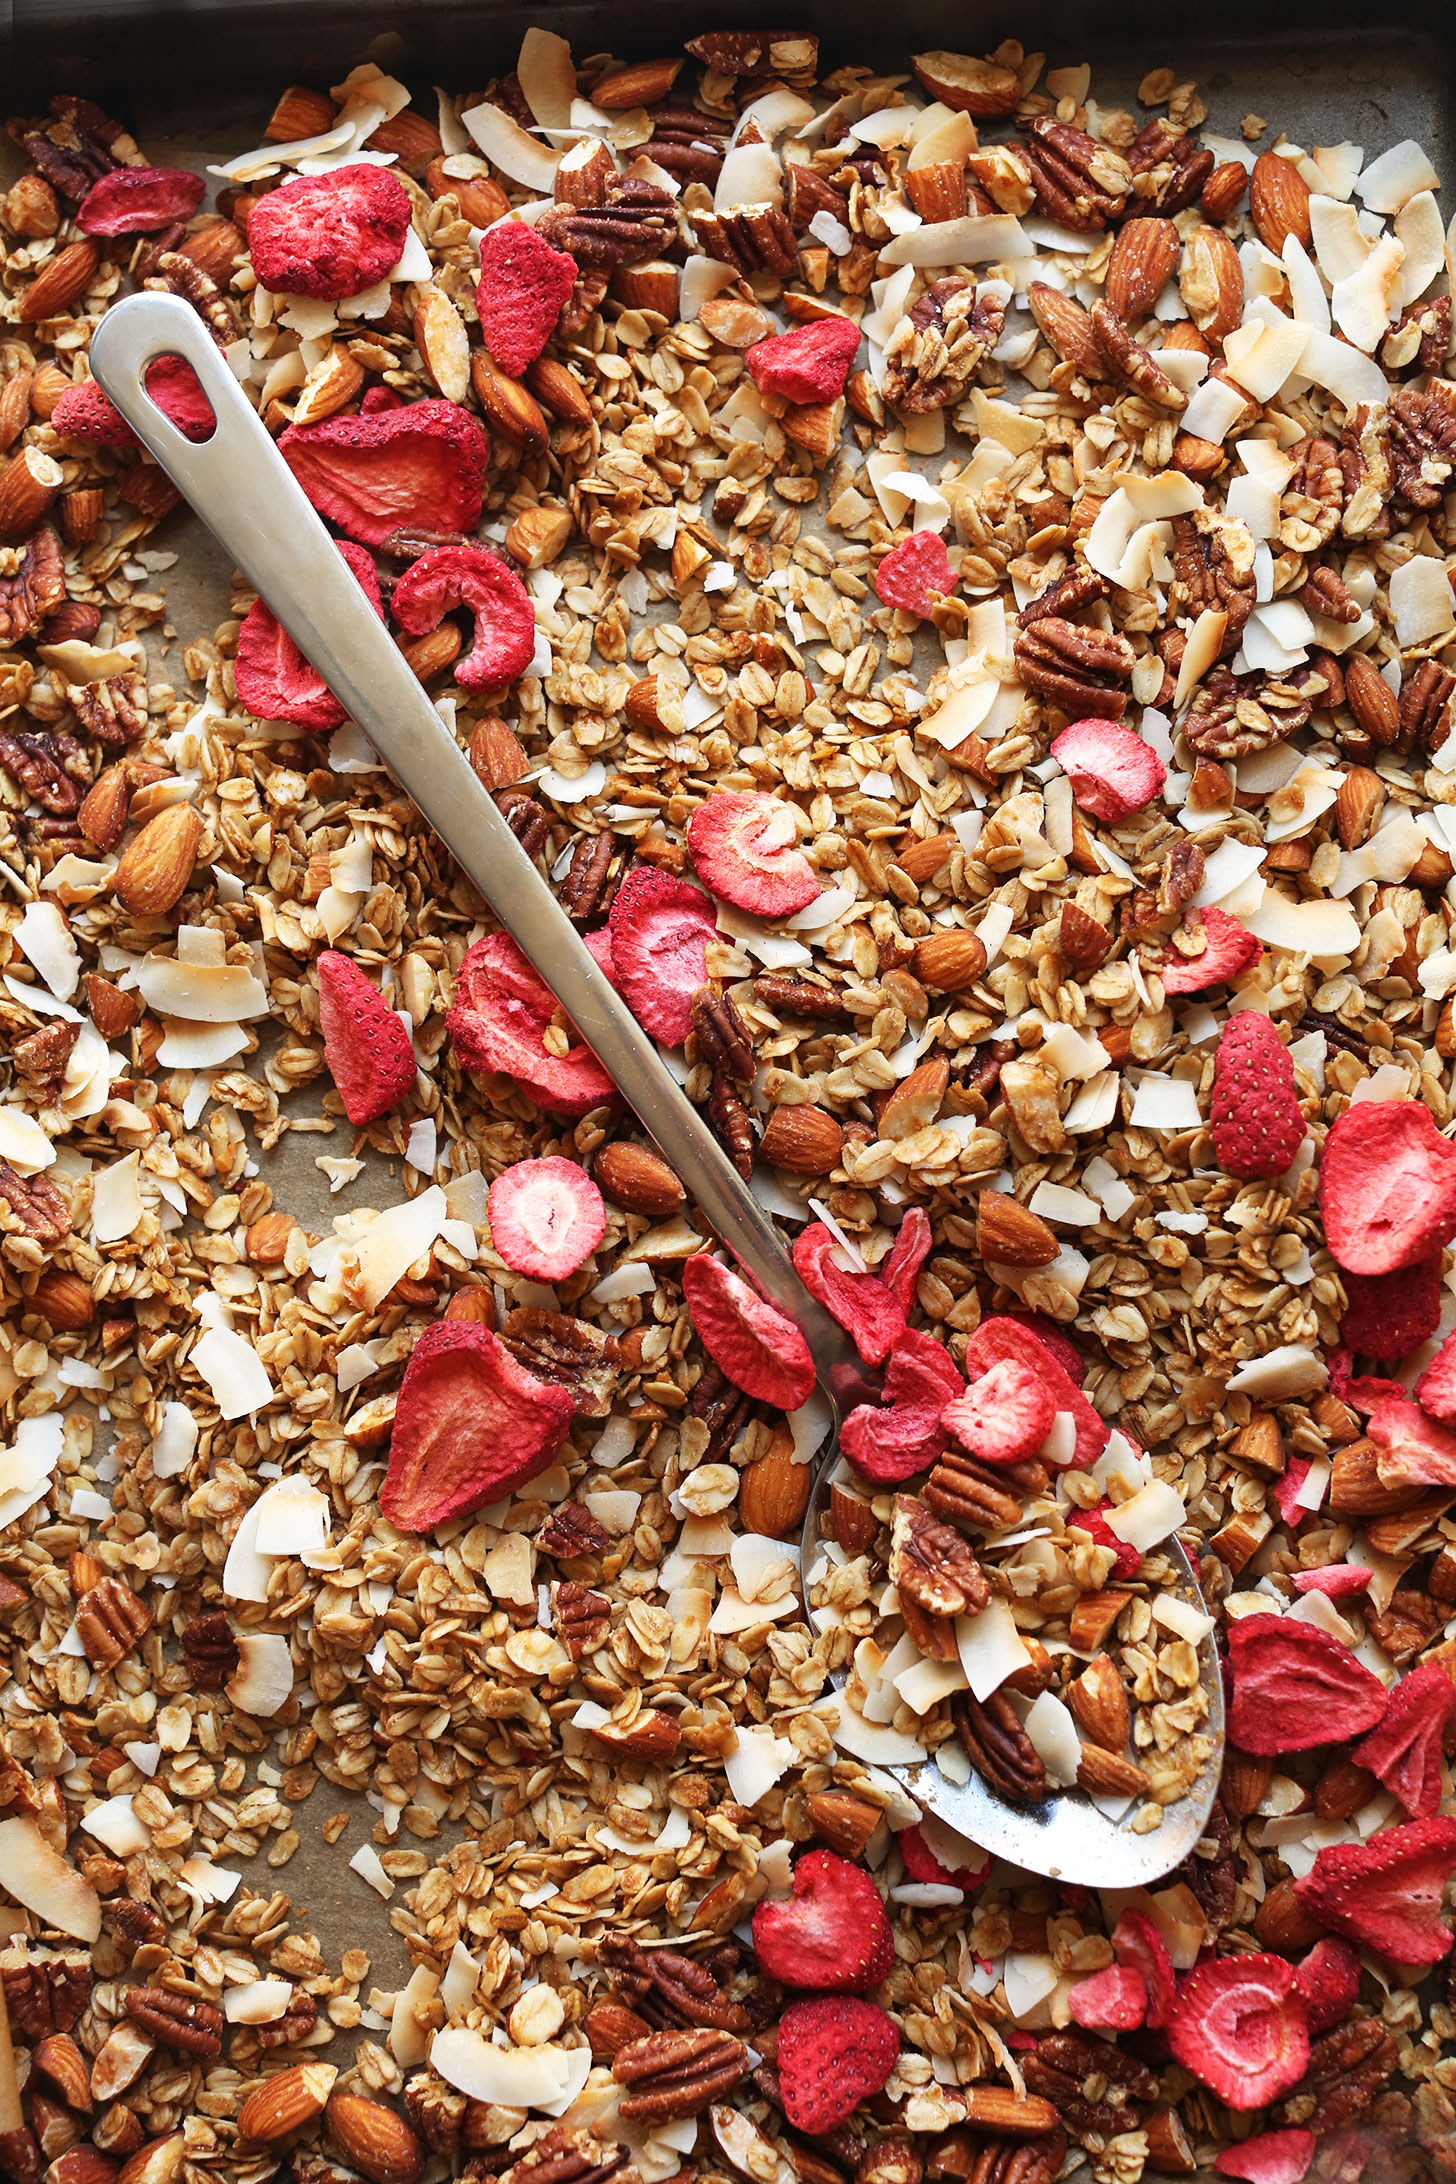 Parchment-lined baking sheet with our gluten-free vegan Coconut Strawberry Granola recipe